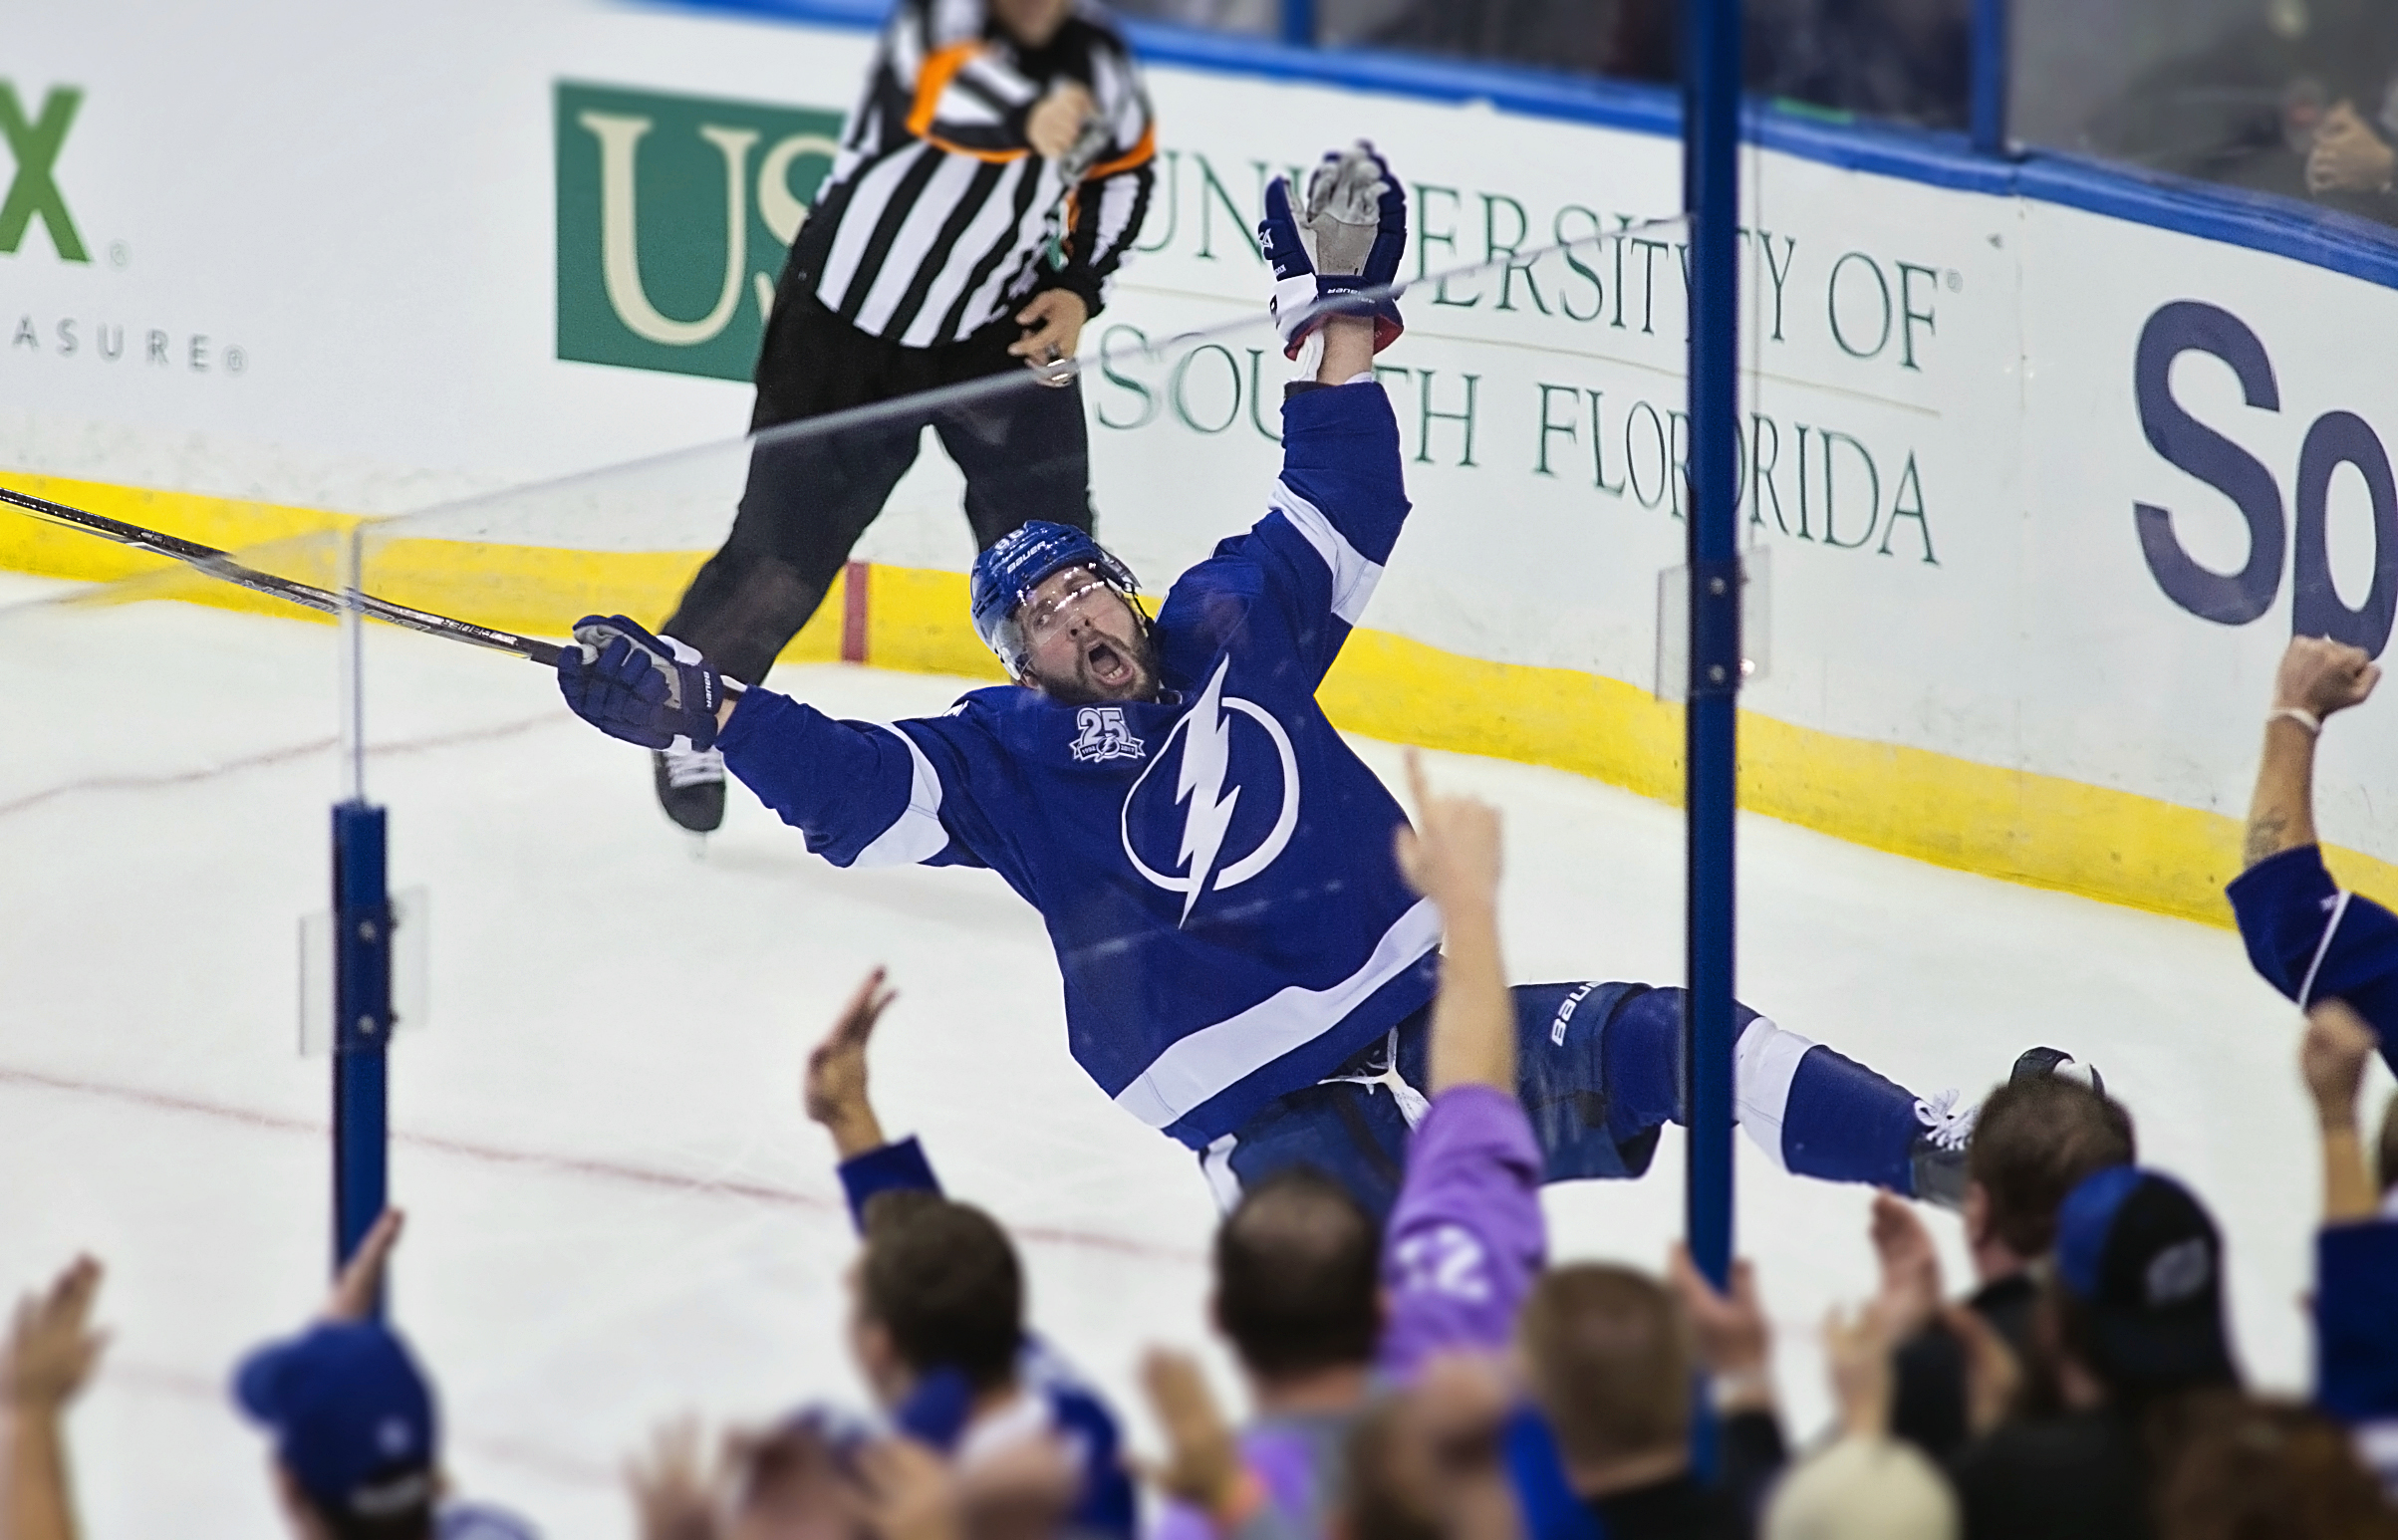 Kucherov celebrates a skid-breaking goal./CARMEN MANDATO